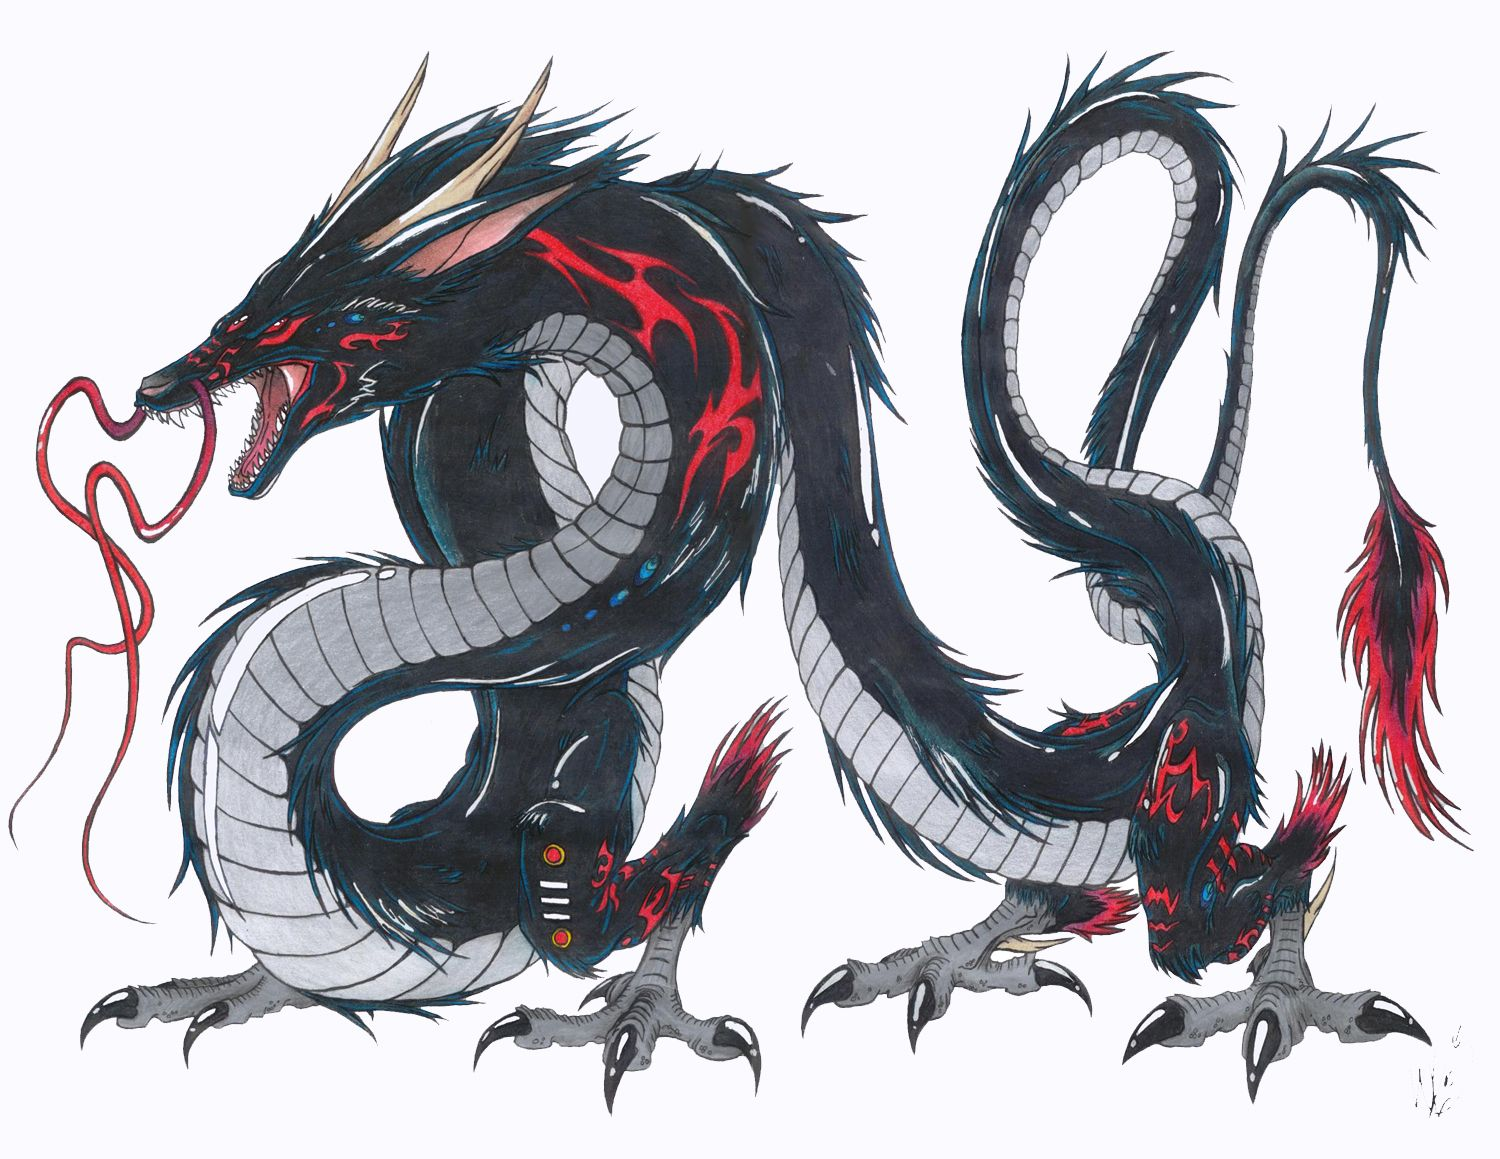 1500x1159 Black Dragon Takarabria, Ver.2 By